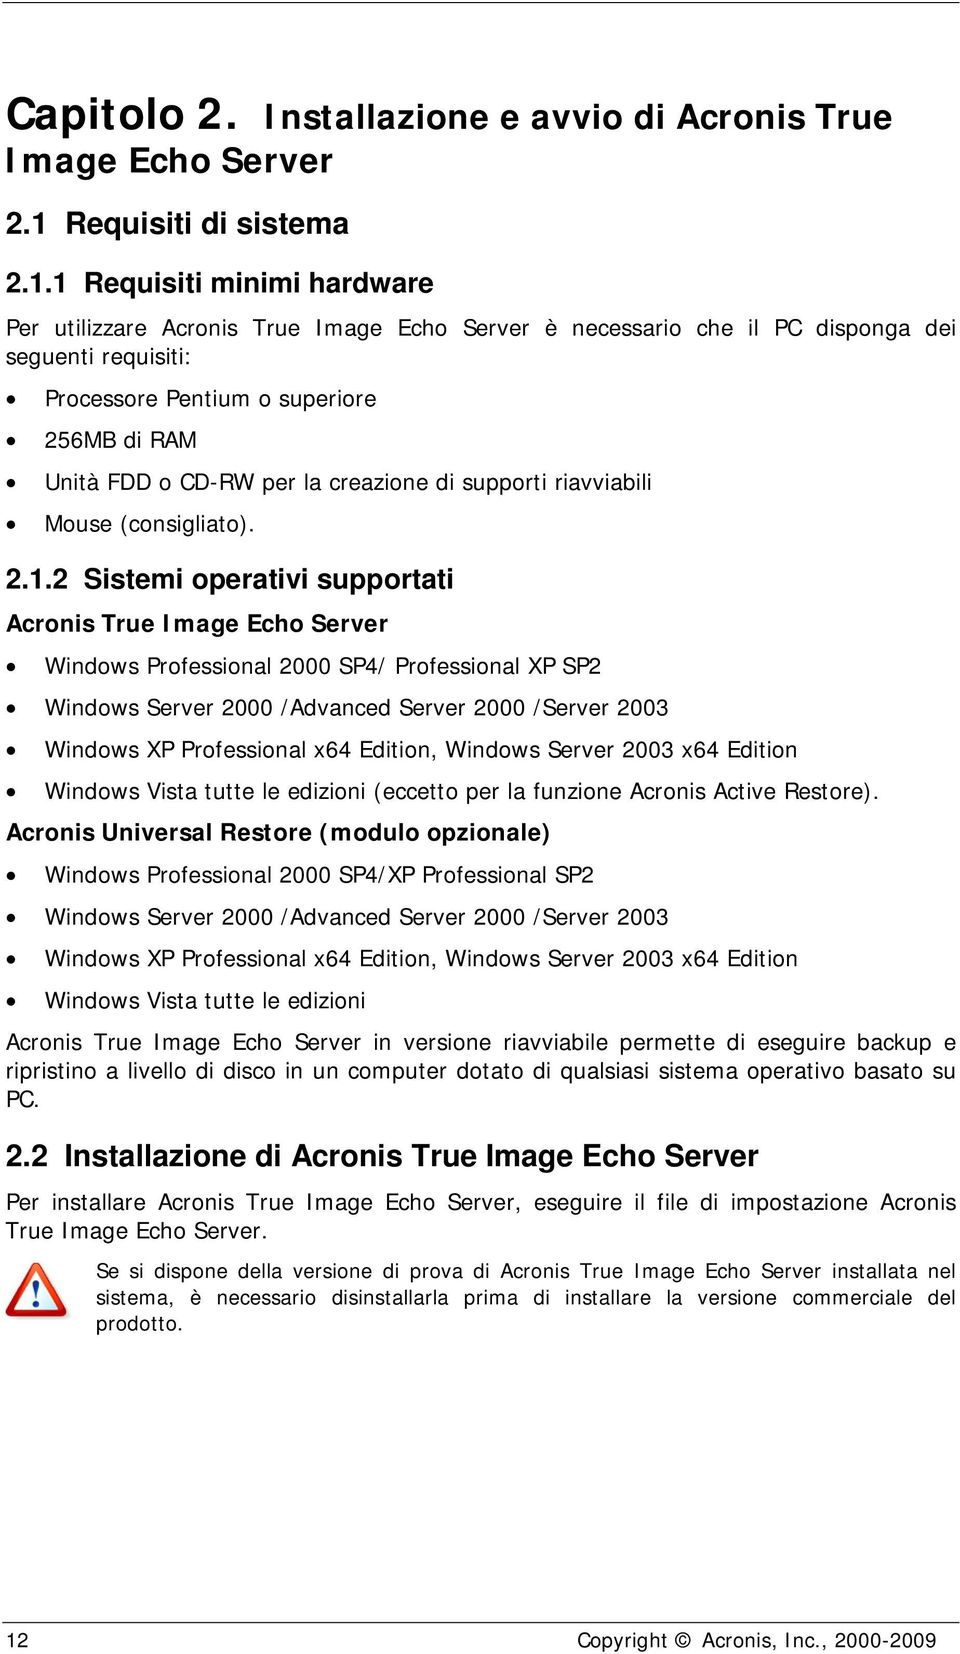 1 Requisiti minimi hardware Per utilizzare Acronis True Image Echo Server è necessario che il PC disponga dei seguenti requisiti: Processore Pentium o superiore 256MB di RAM Unità FDD o CD-RW per la